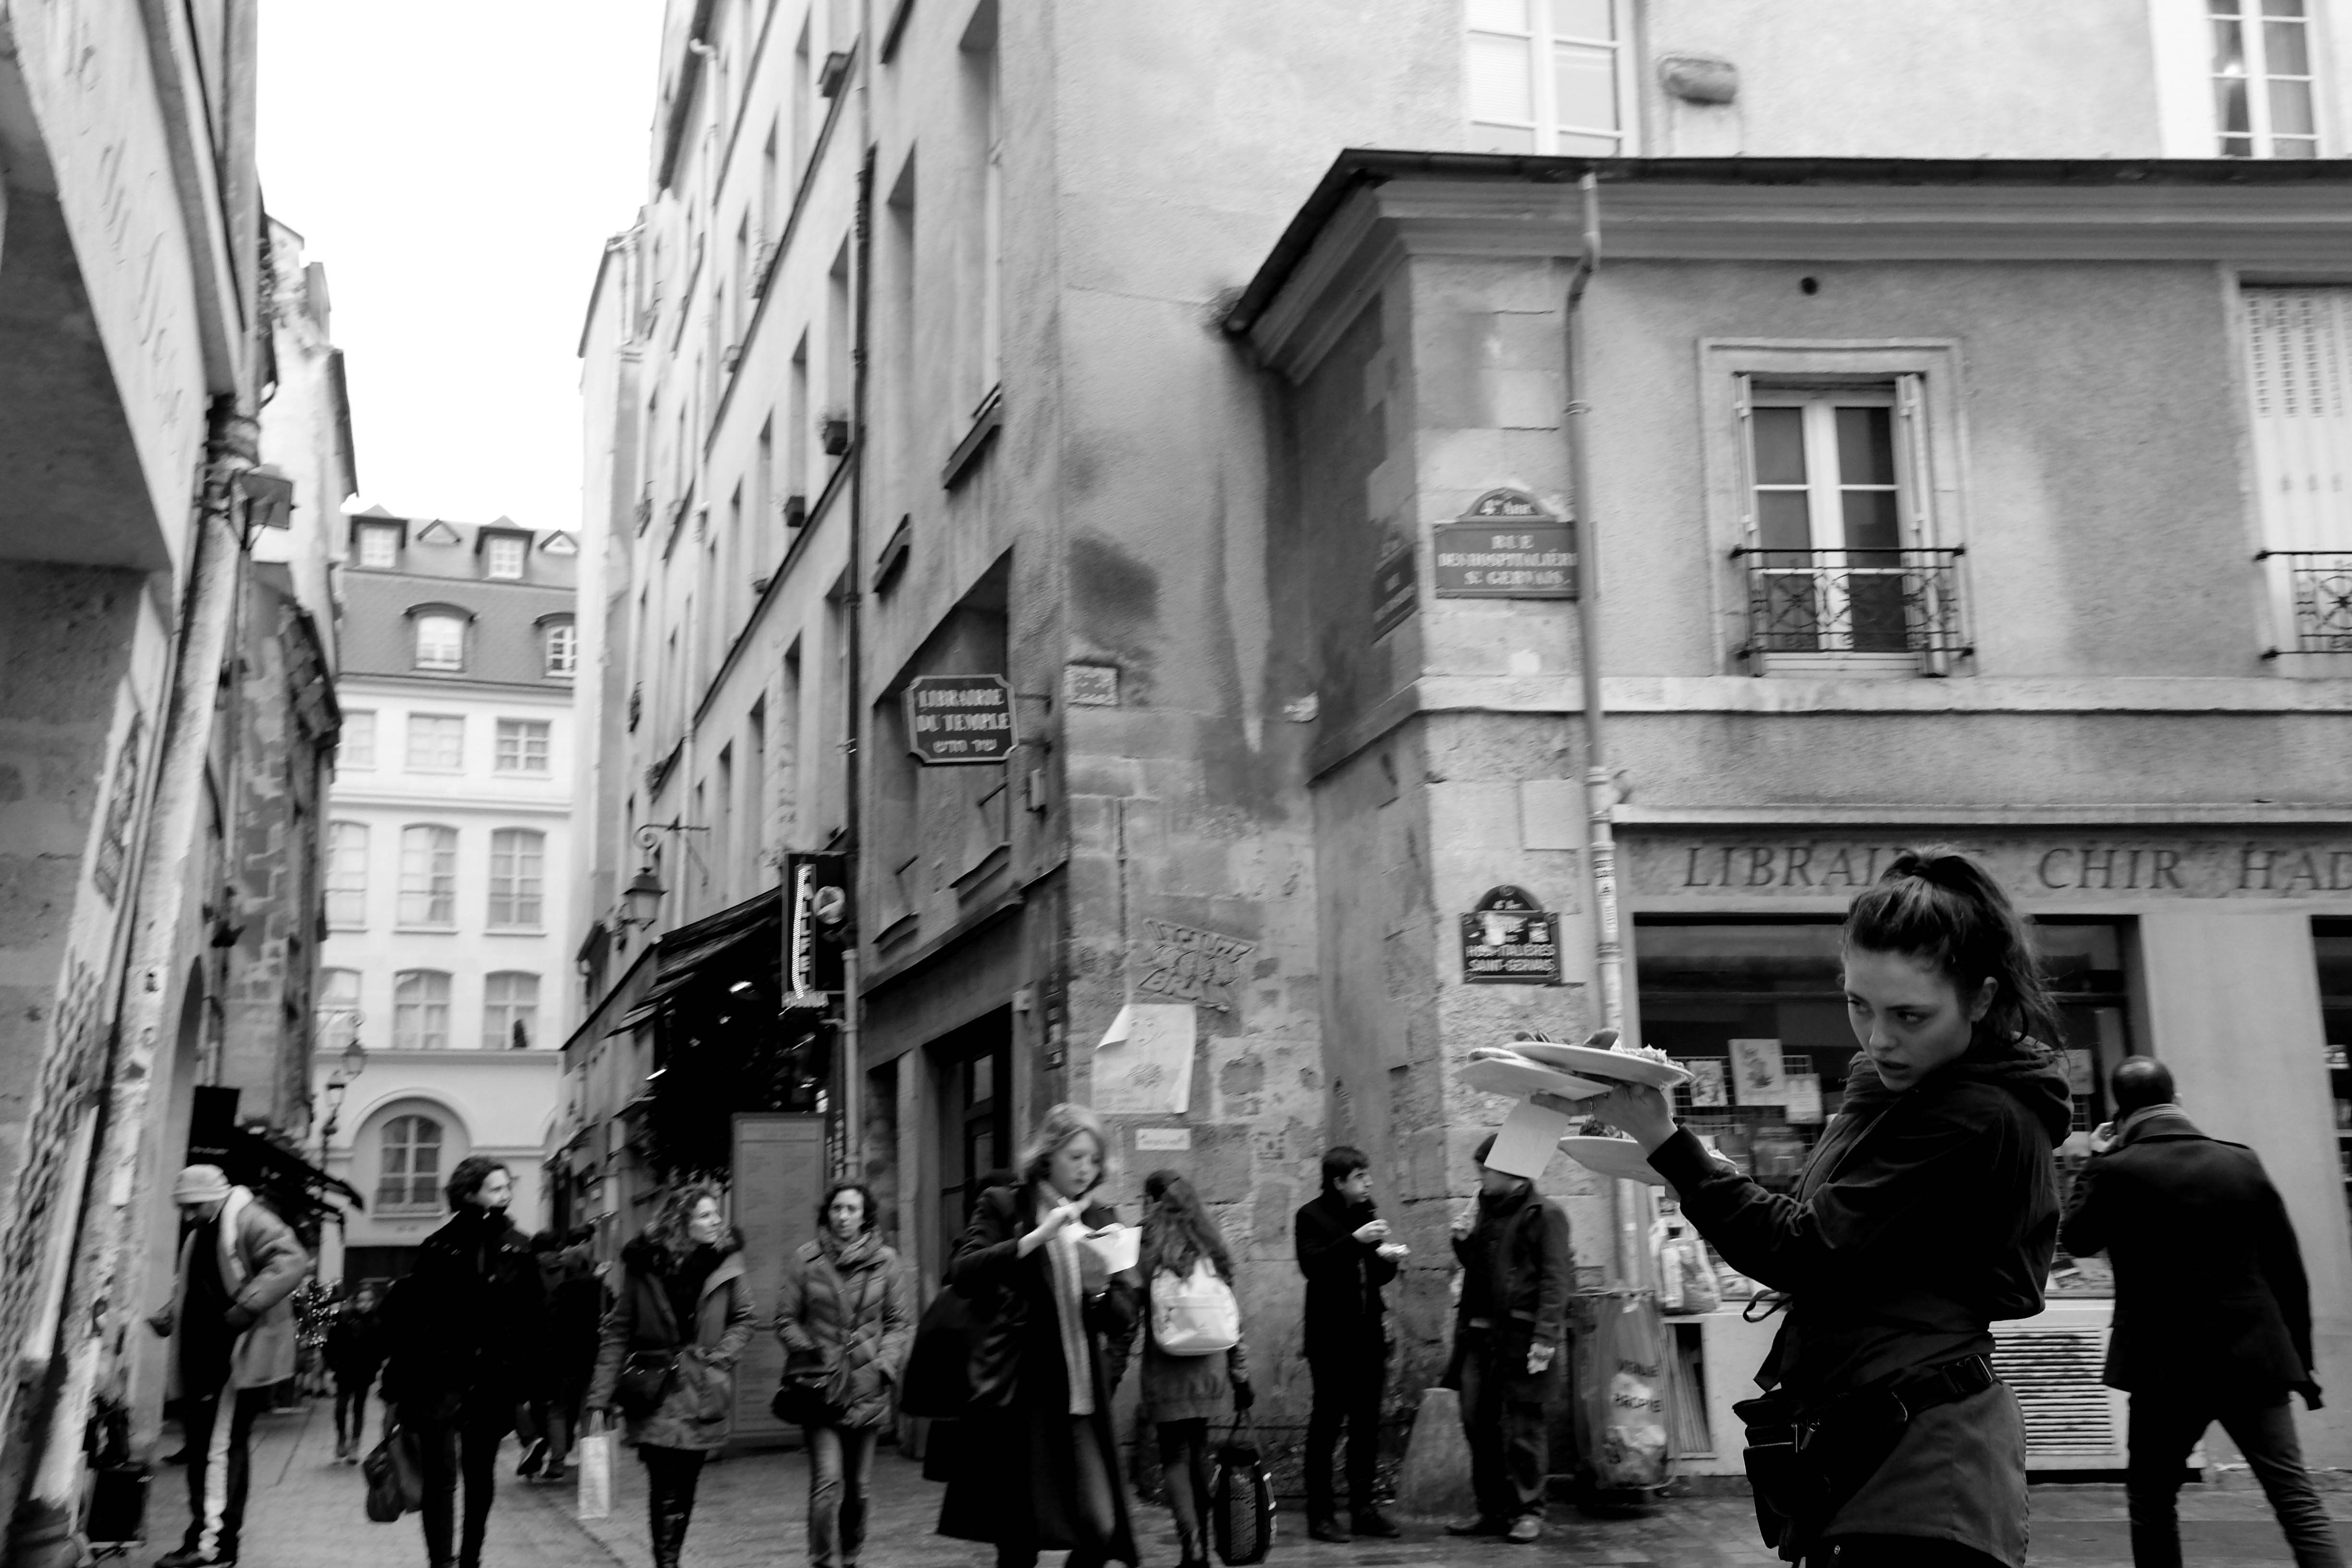 Old Paree: Street Photography in Paris